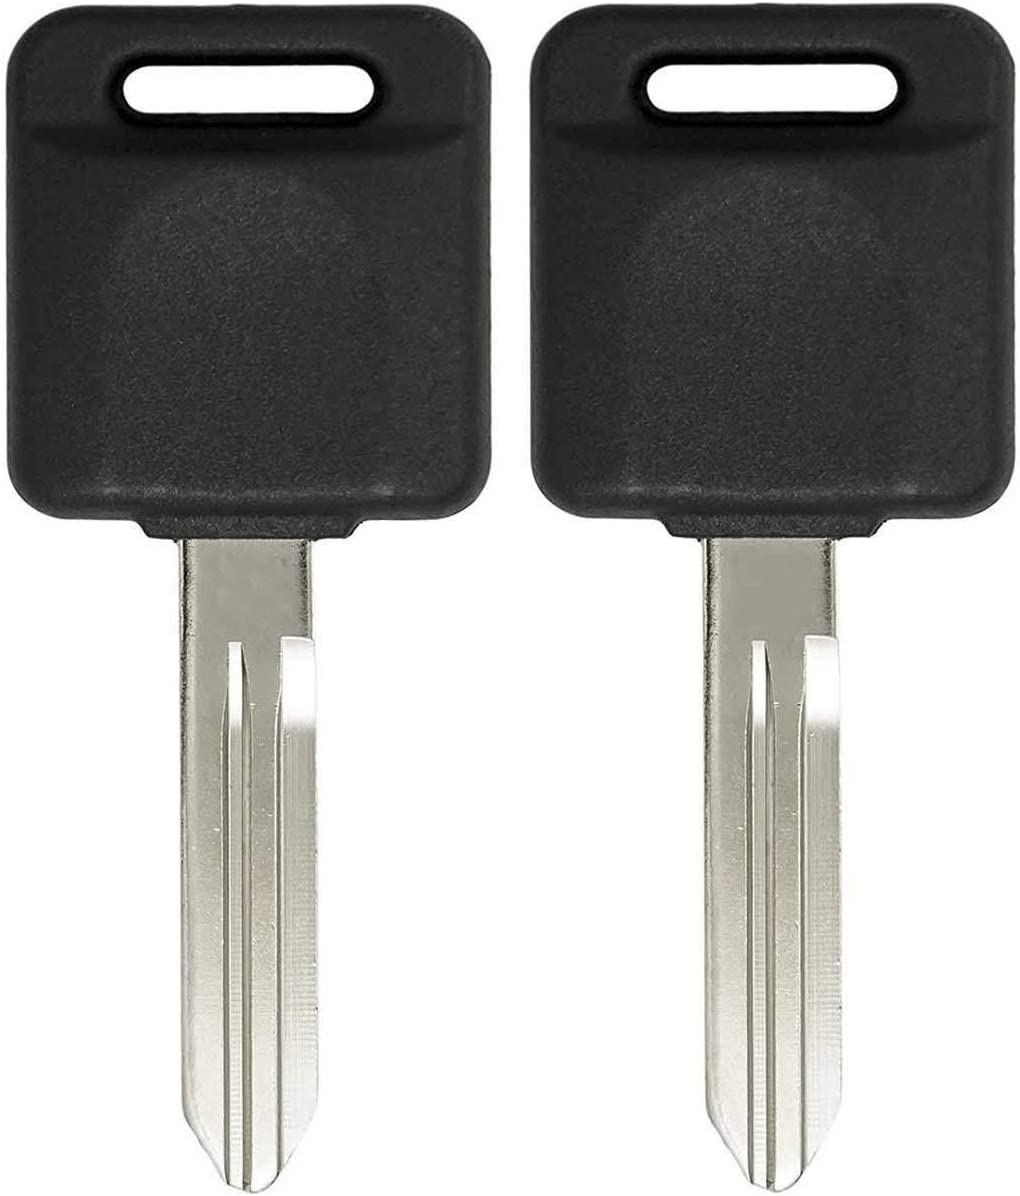 2x New Replacement Keyless Transponder Ignition Key For Nissan ID 46 Chip N104T